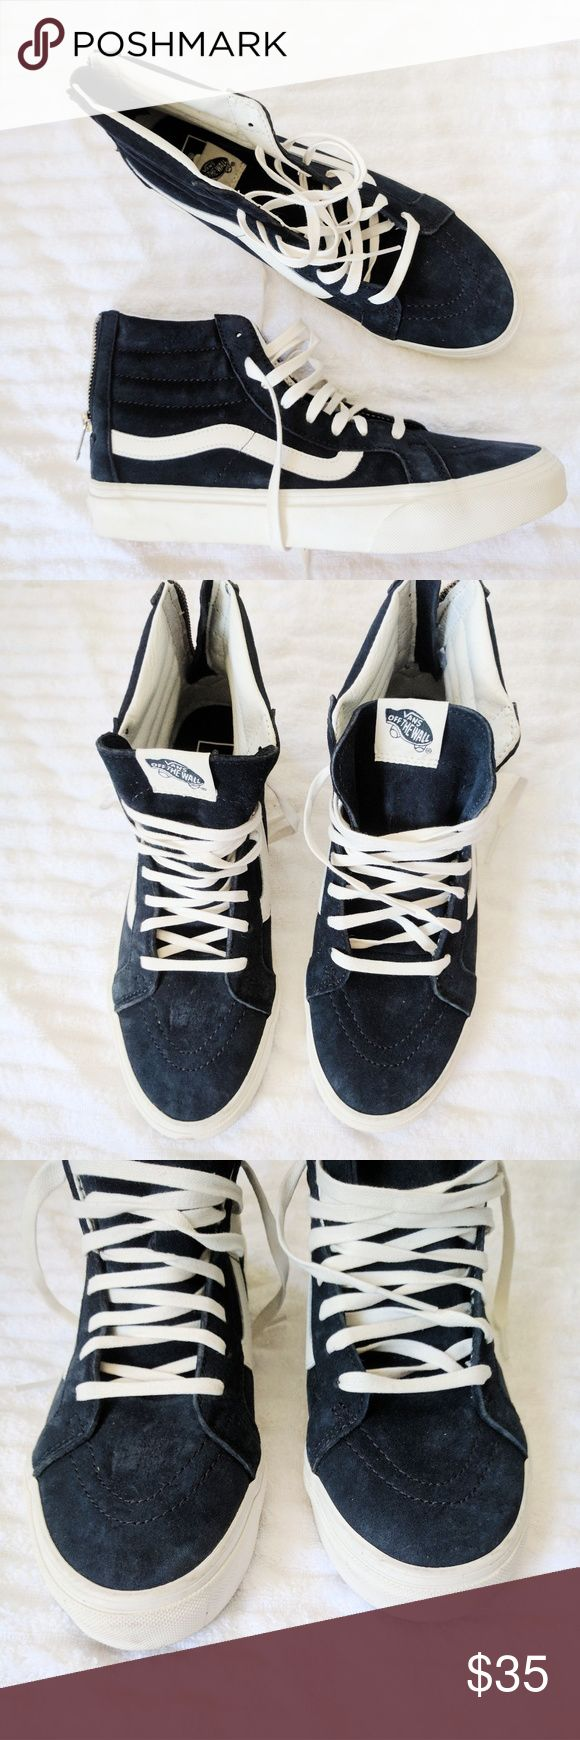 SALE price firm Vans SK-8 HI navy suede shoes New without box with minor marks on front toes as seen in third picture. Men - 8, Women - 9.5 Vans Shoes Sneakers